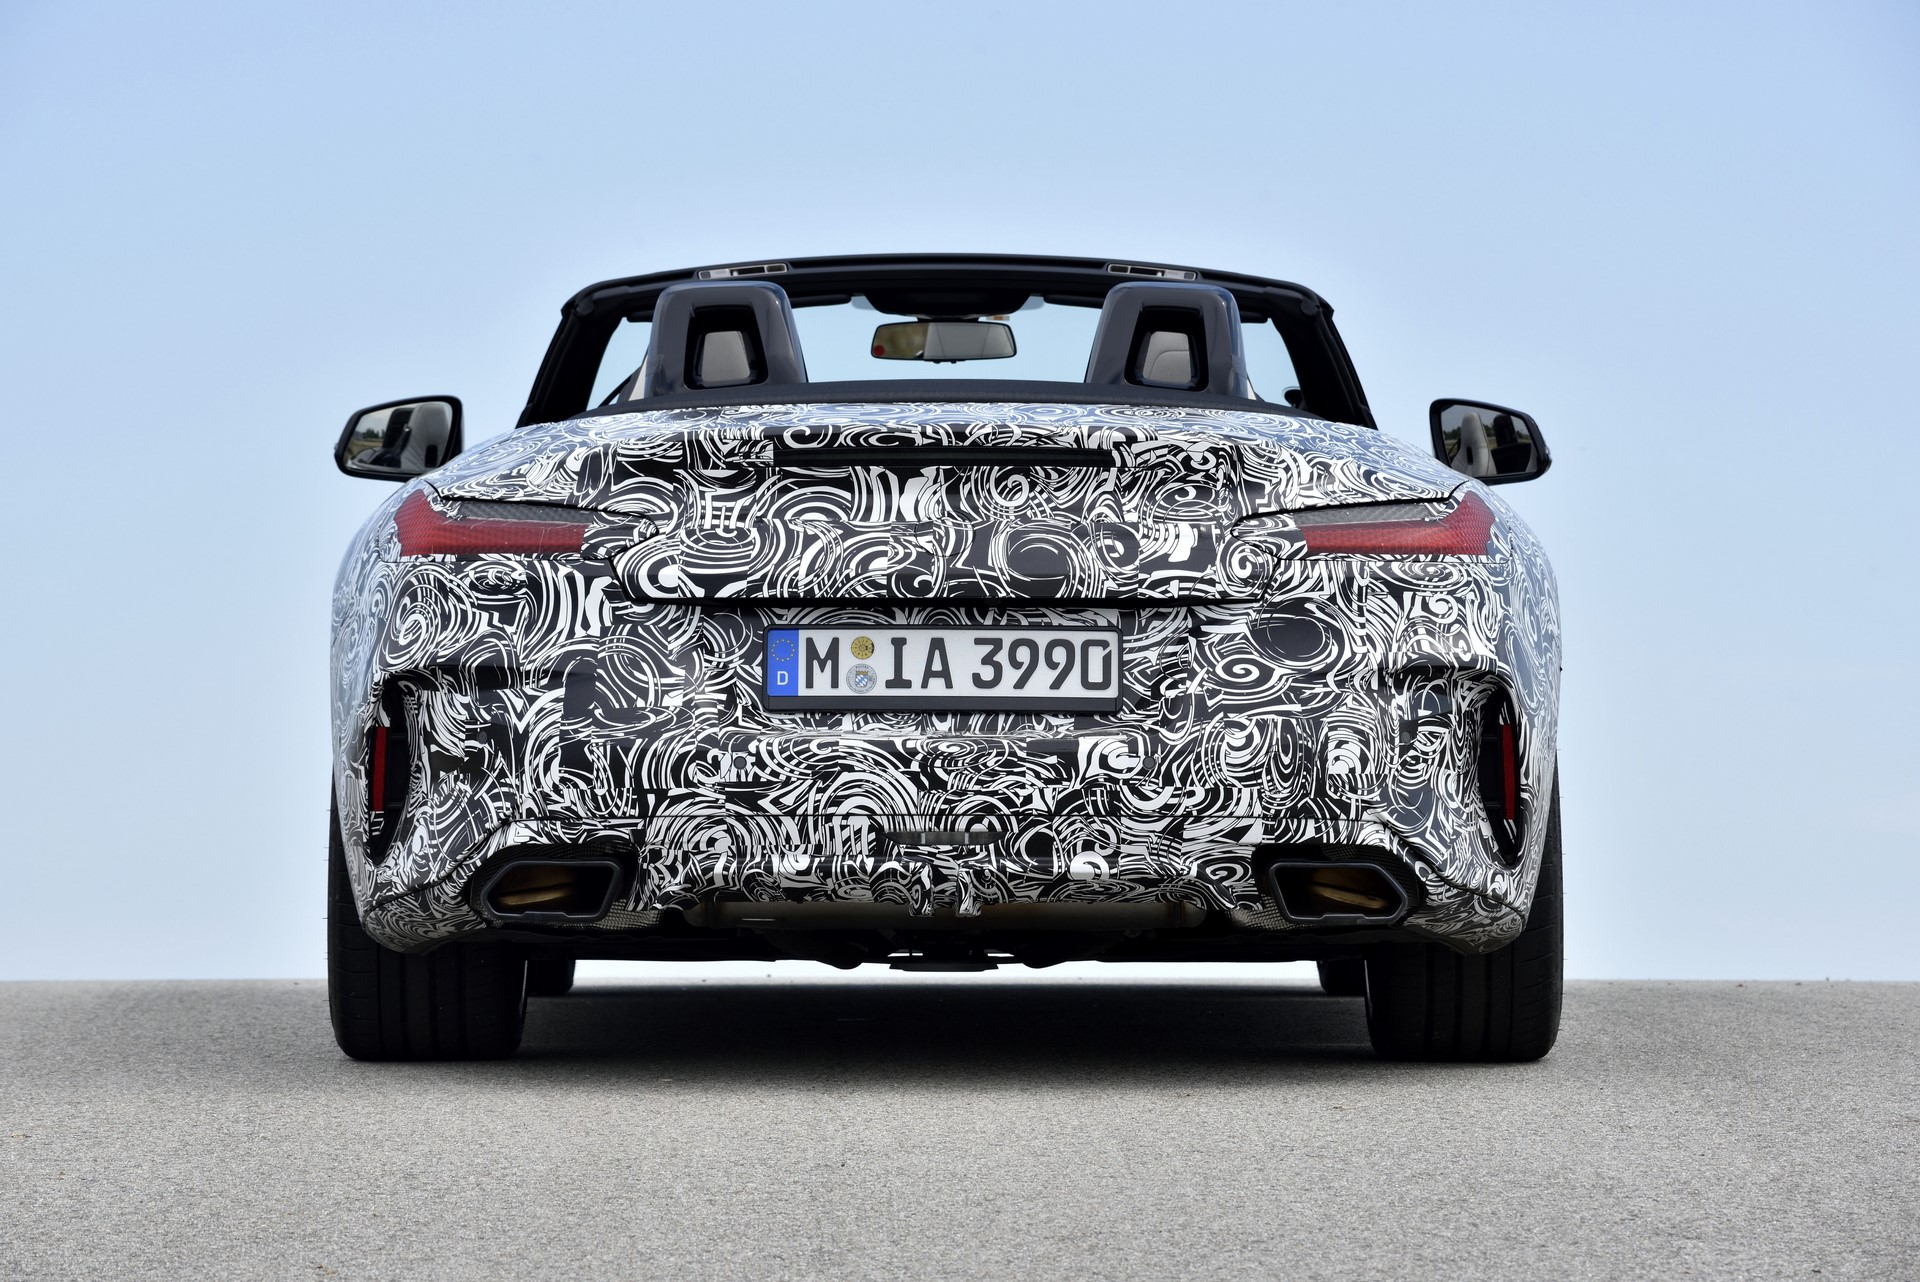 BMW Z4 M40i 2019 official spy photos (31)